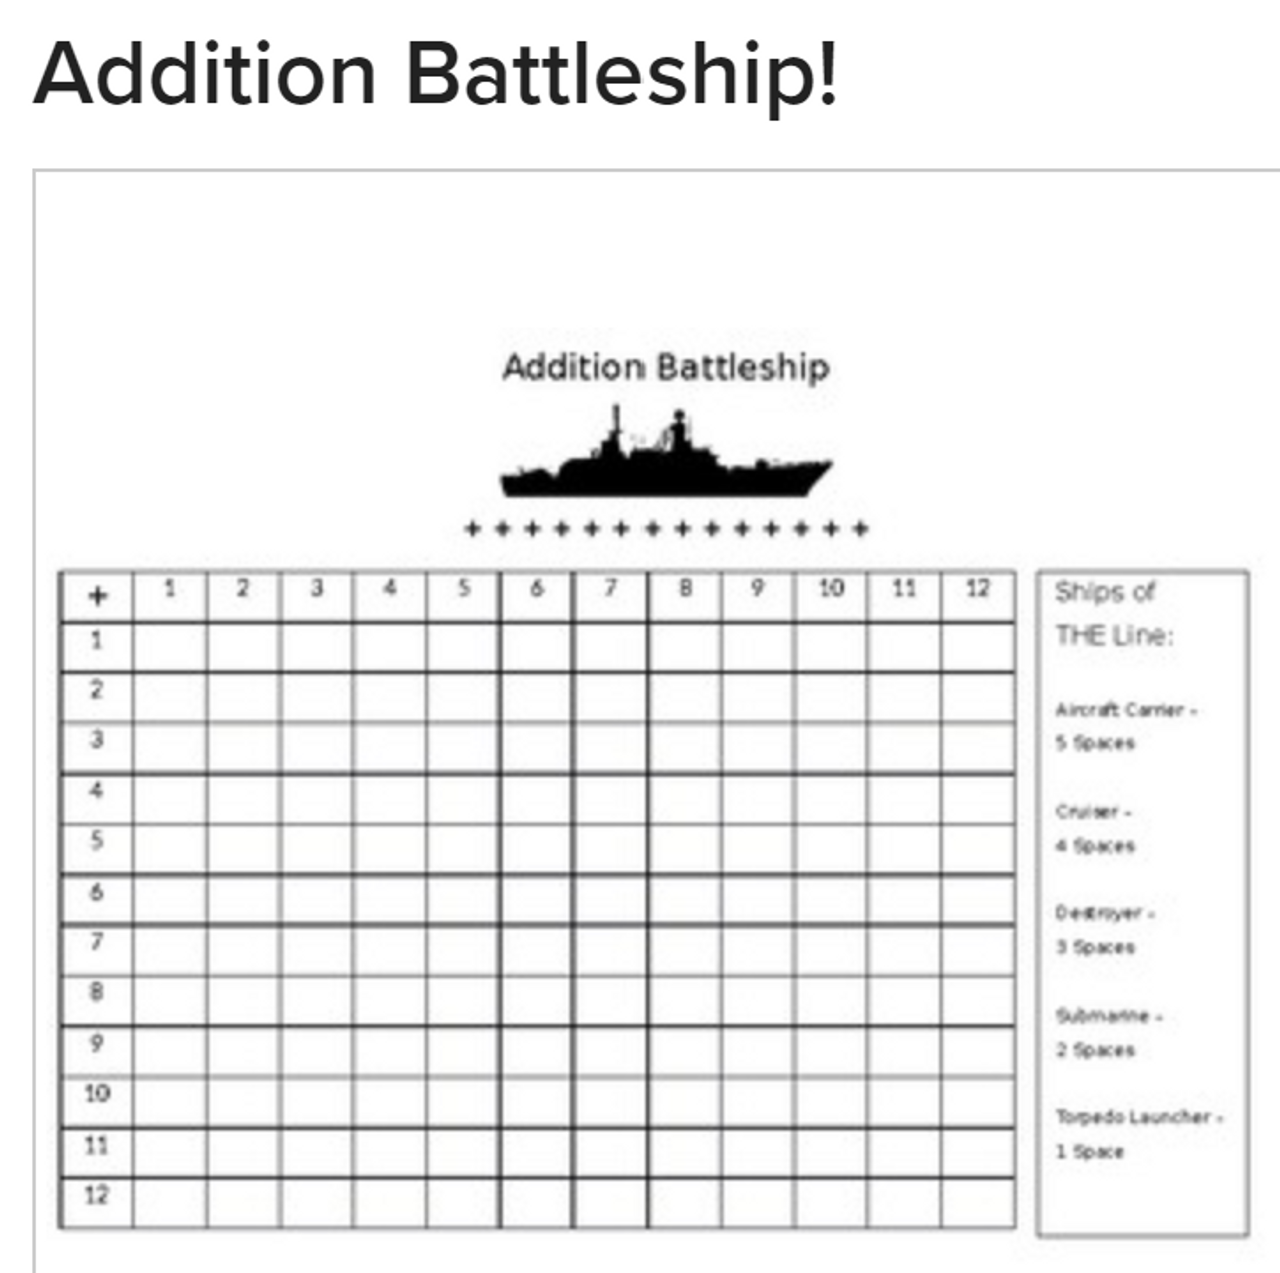 Addition Battleship